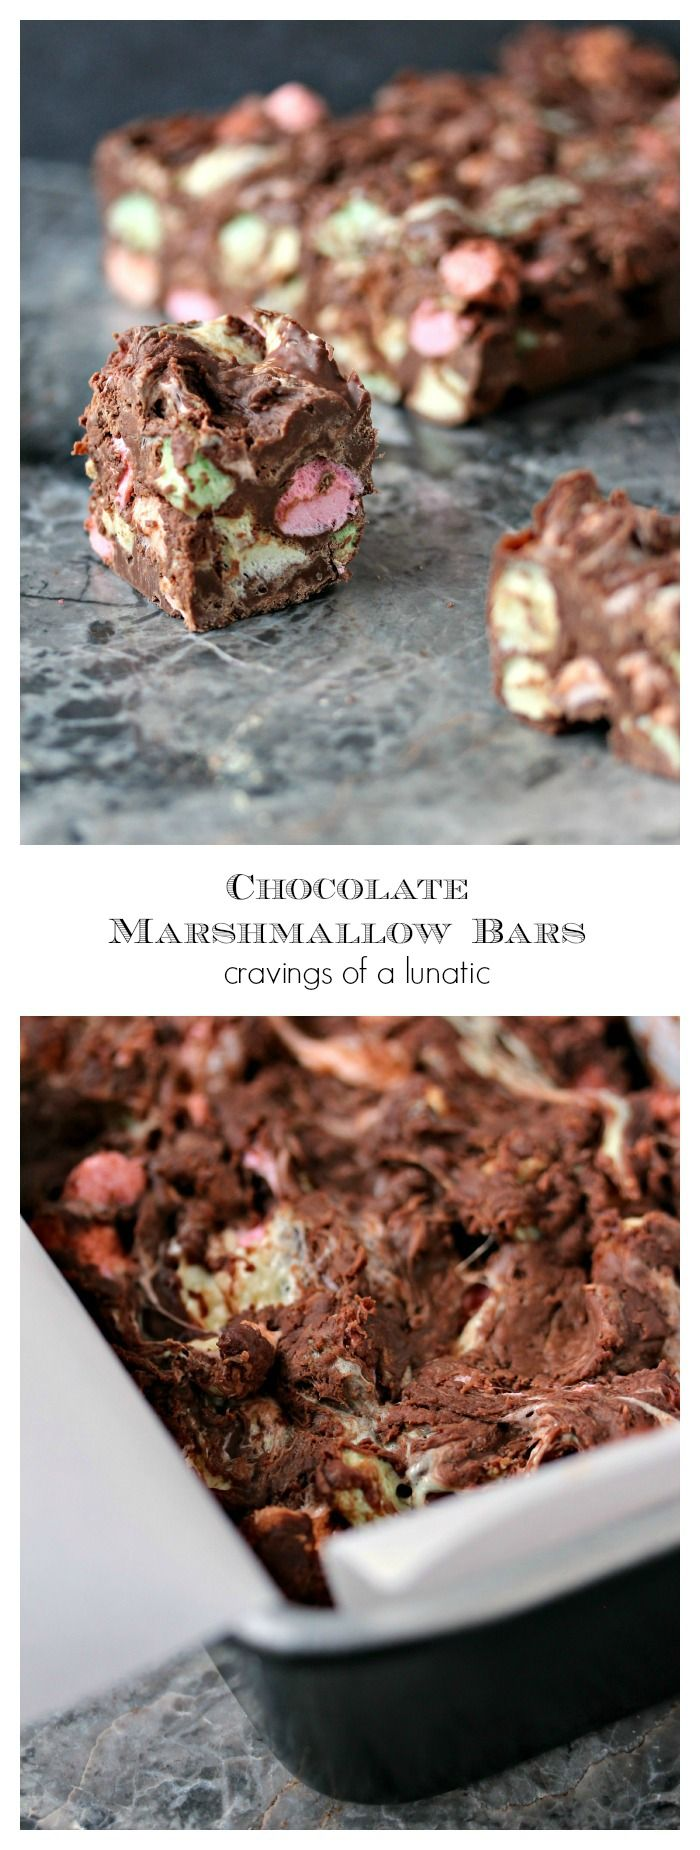 Chocolate Marshmallow Bars- Chocolate marshmallow bars are homemade candy bars for the true marshmallow lover. Perfect for holidays, or any day of the week! Get the recipe at cravingsofalunatic.com